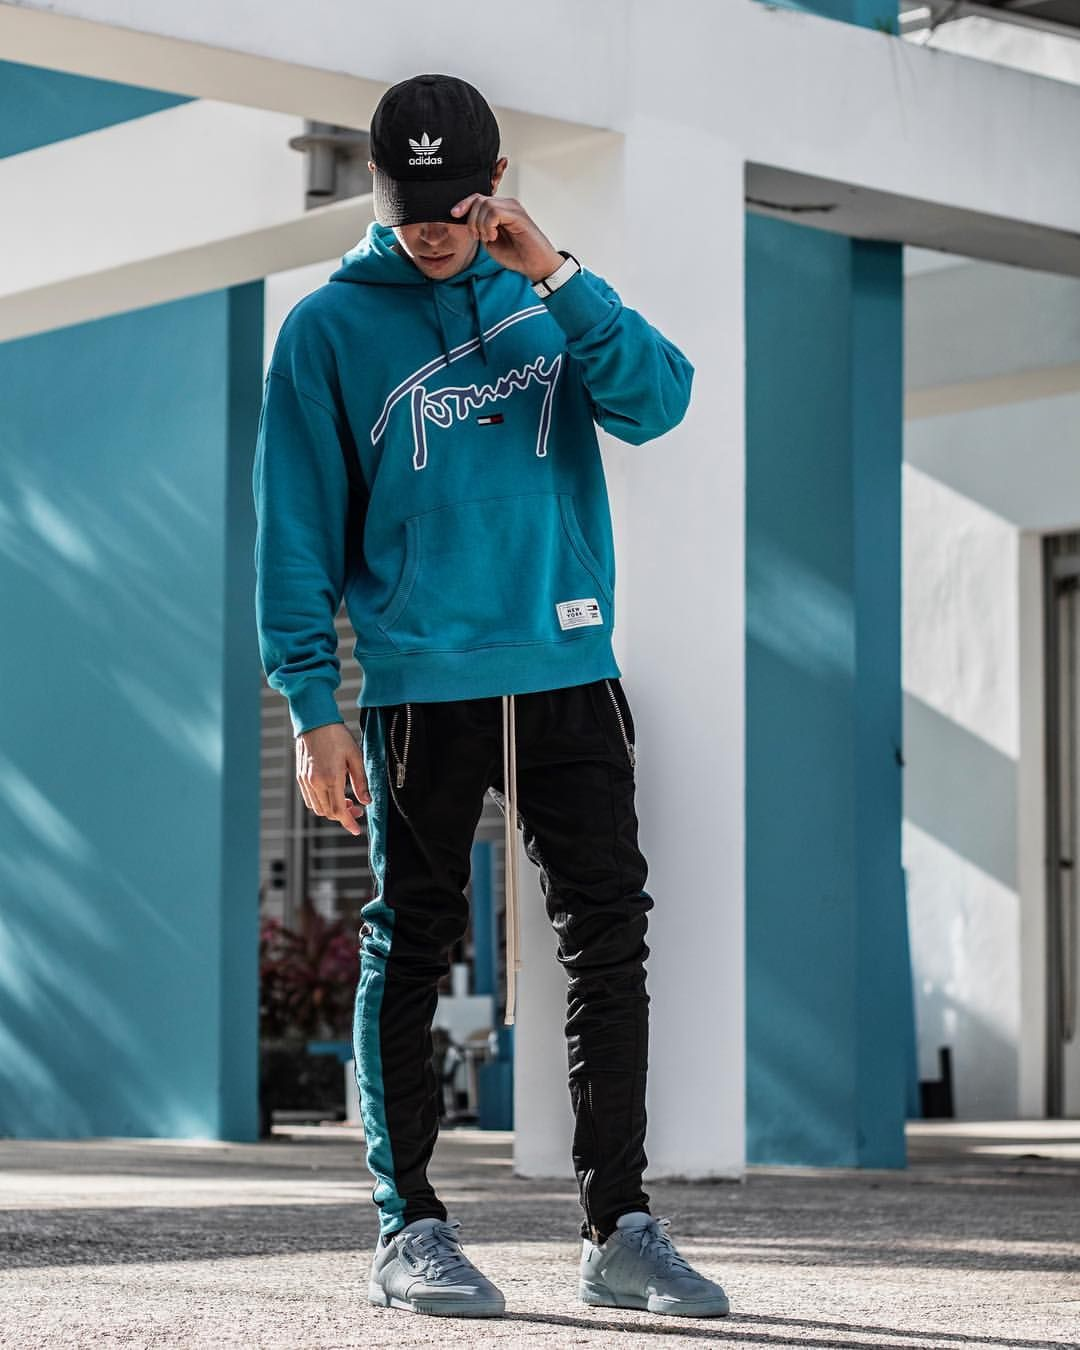 c3585561e8c61 ... editorial street style. ❗ ❗ ❗️FOR MORE DOPE PINS FOLLOW ME   parixnextdoor AND ON IG ❗ ❗ ❗ ❗️Fashion posts